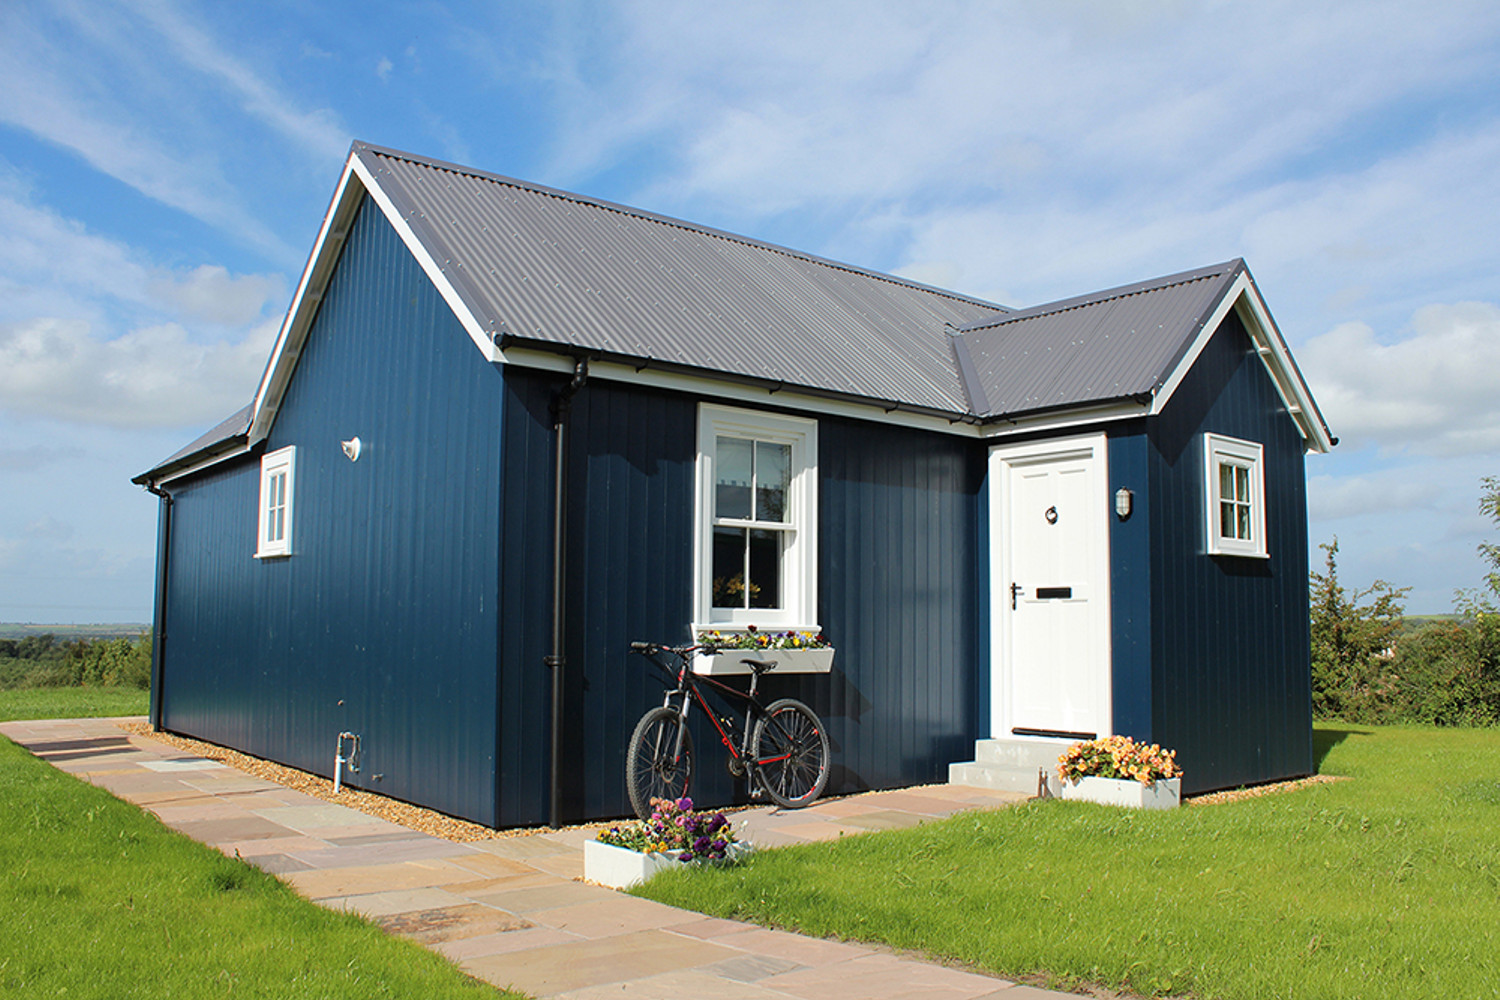 Gallery the wee house company small house bliss for Tiny home companies